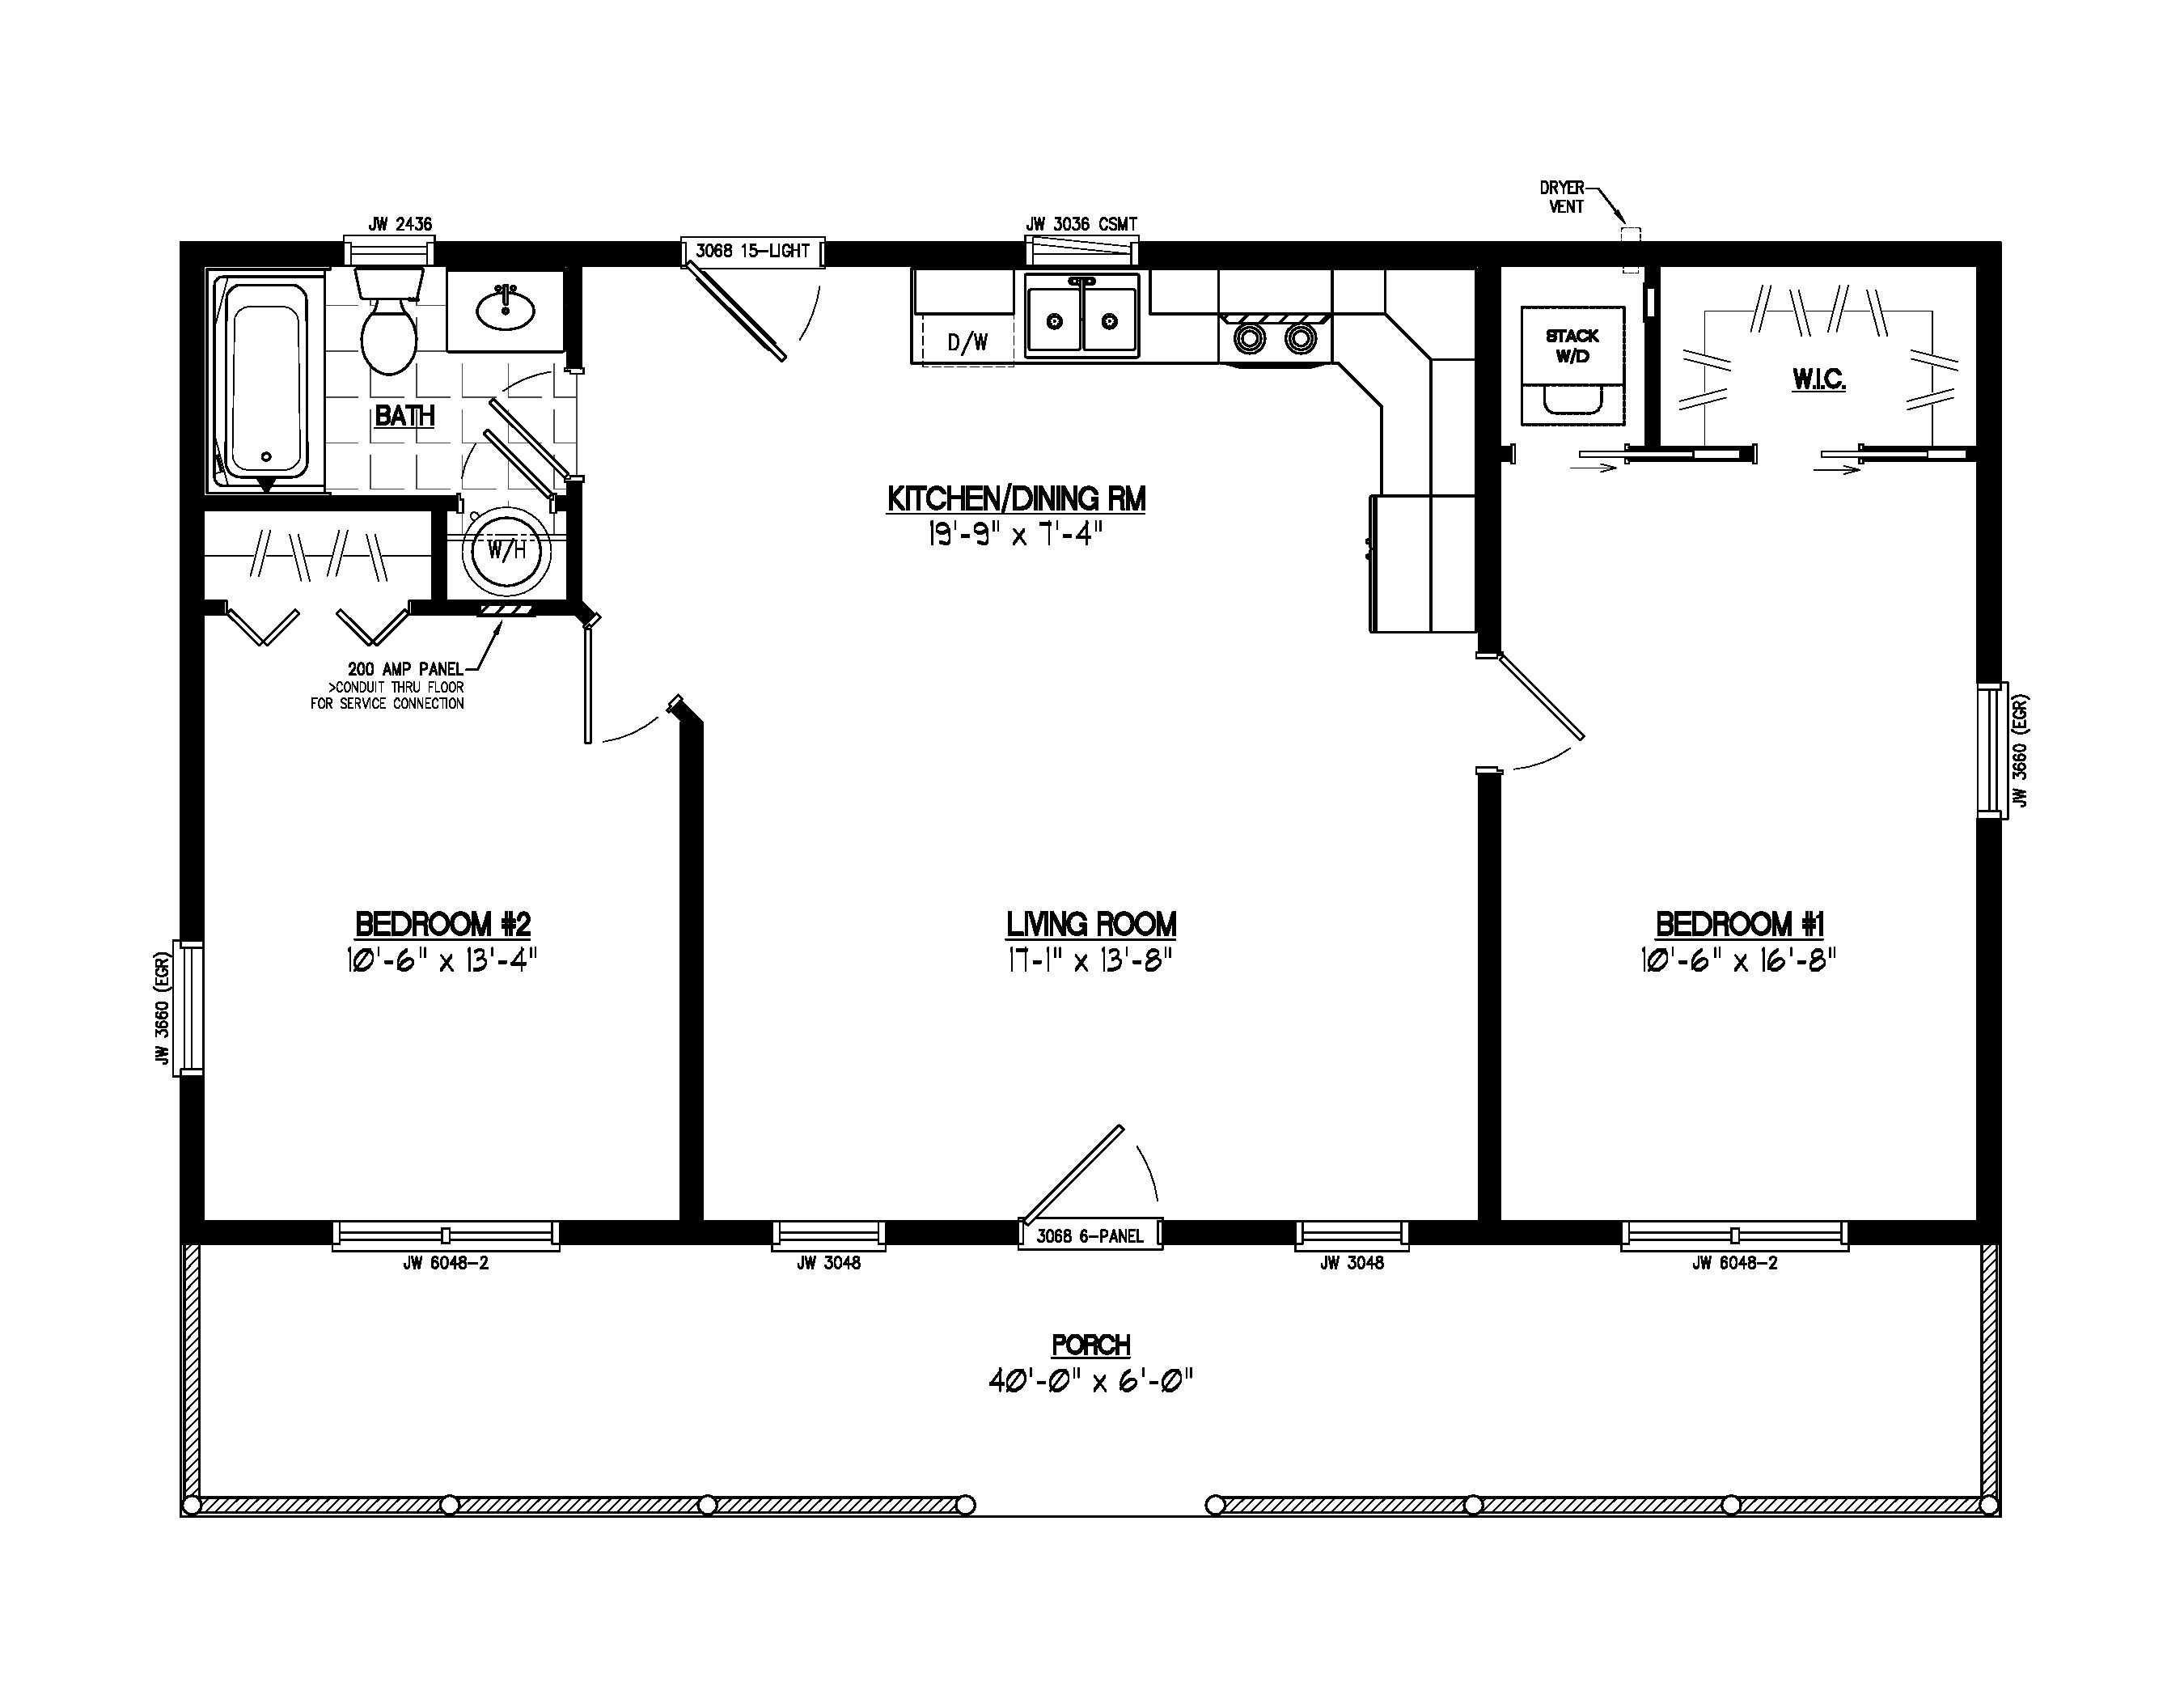 A Single Story Log Cabin With Full Endearing Enchanting 24 X 32 Floor Plans Cabin Floor Plans Log Cabin Floor Plans Cabin Floor